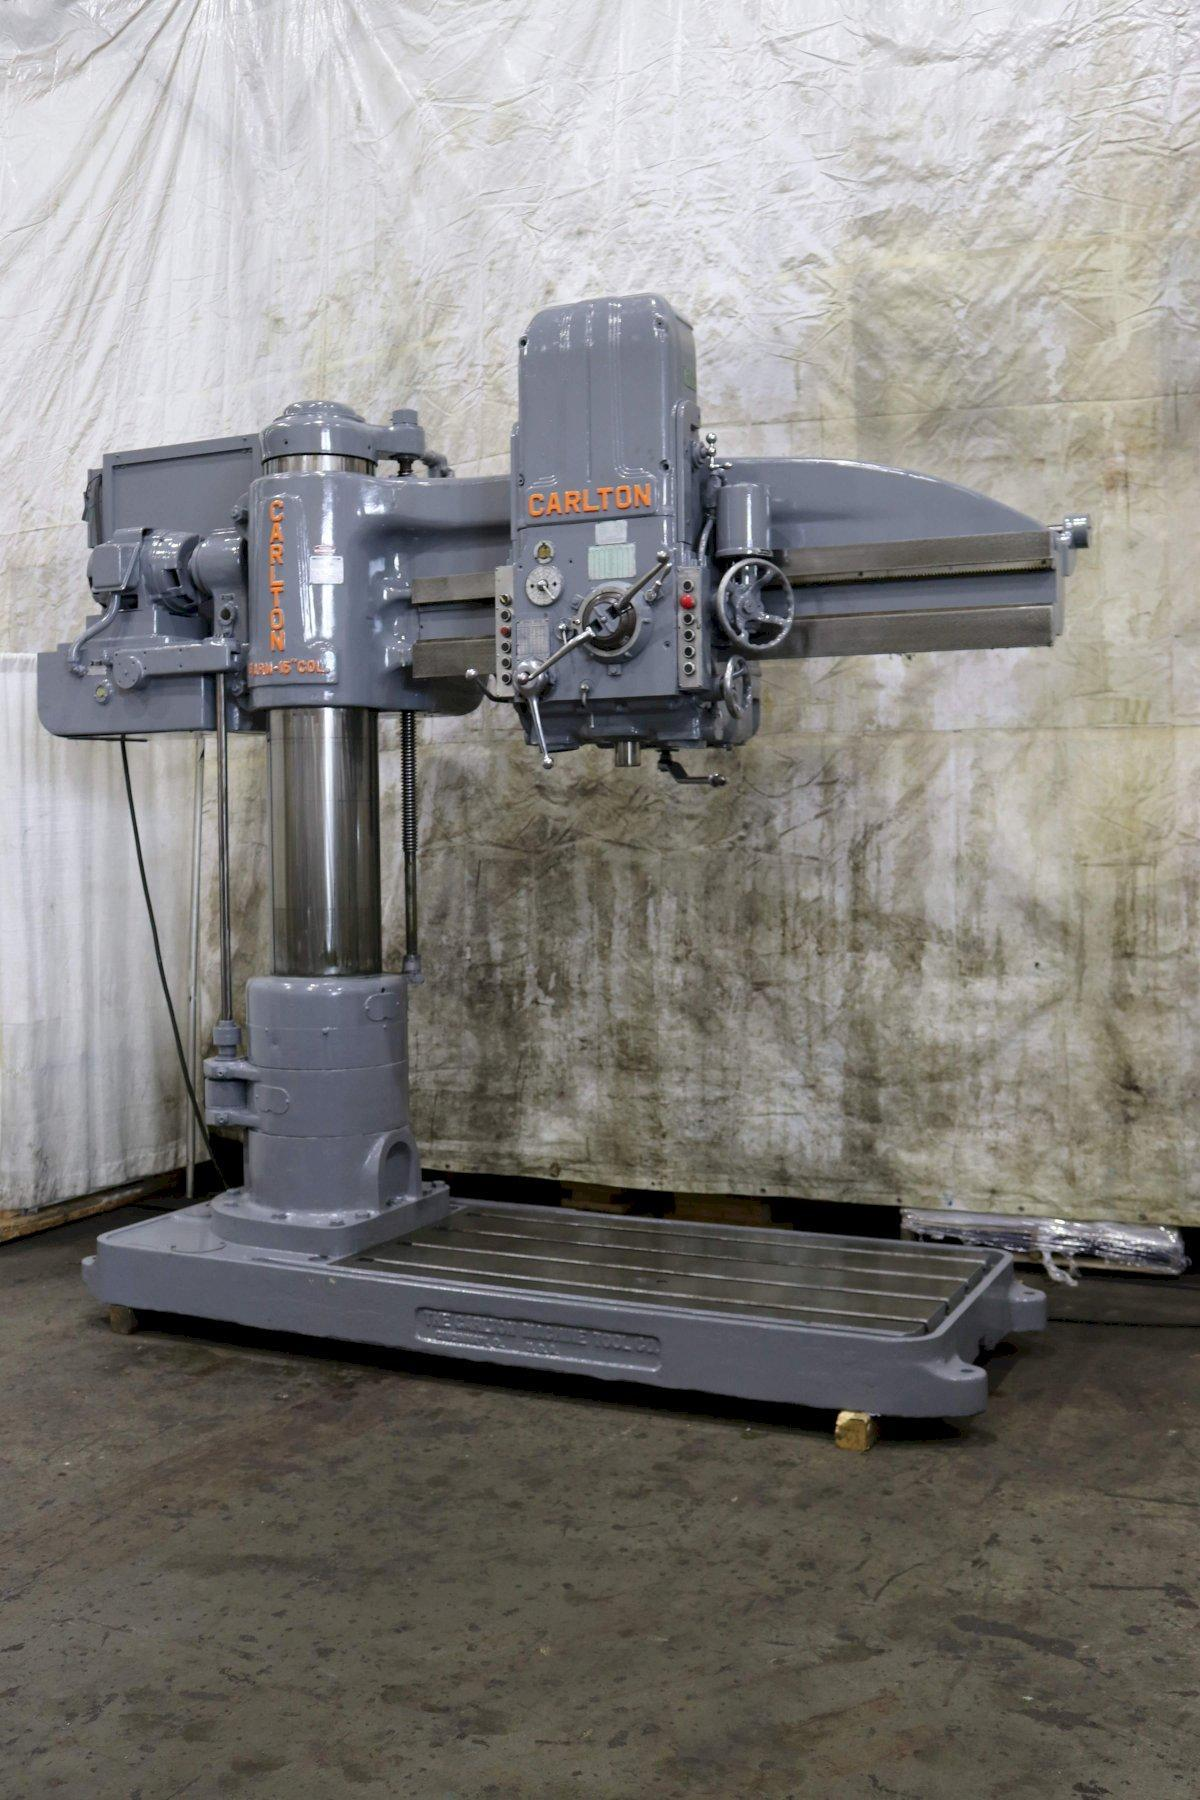 6' X 15' CARLTON RADIAL ARM DRILL: STOCK #72864